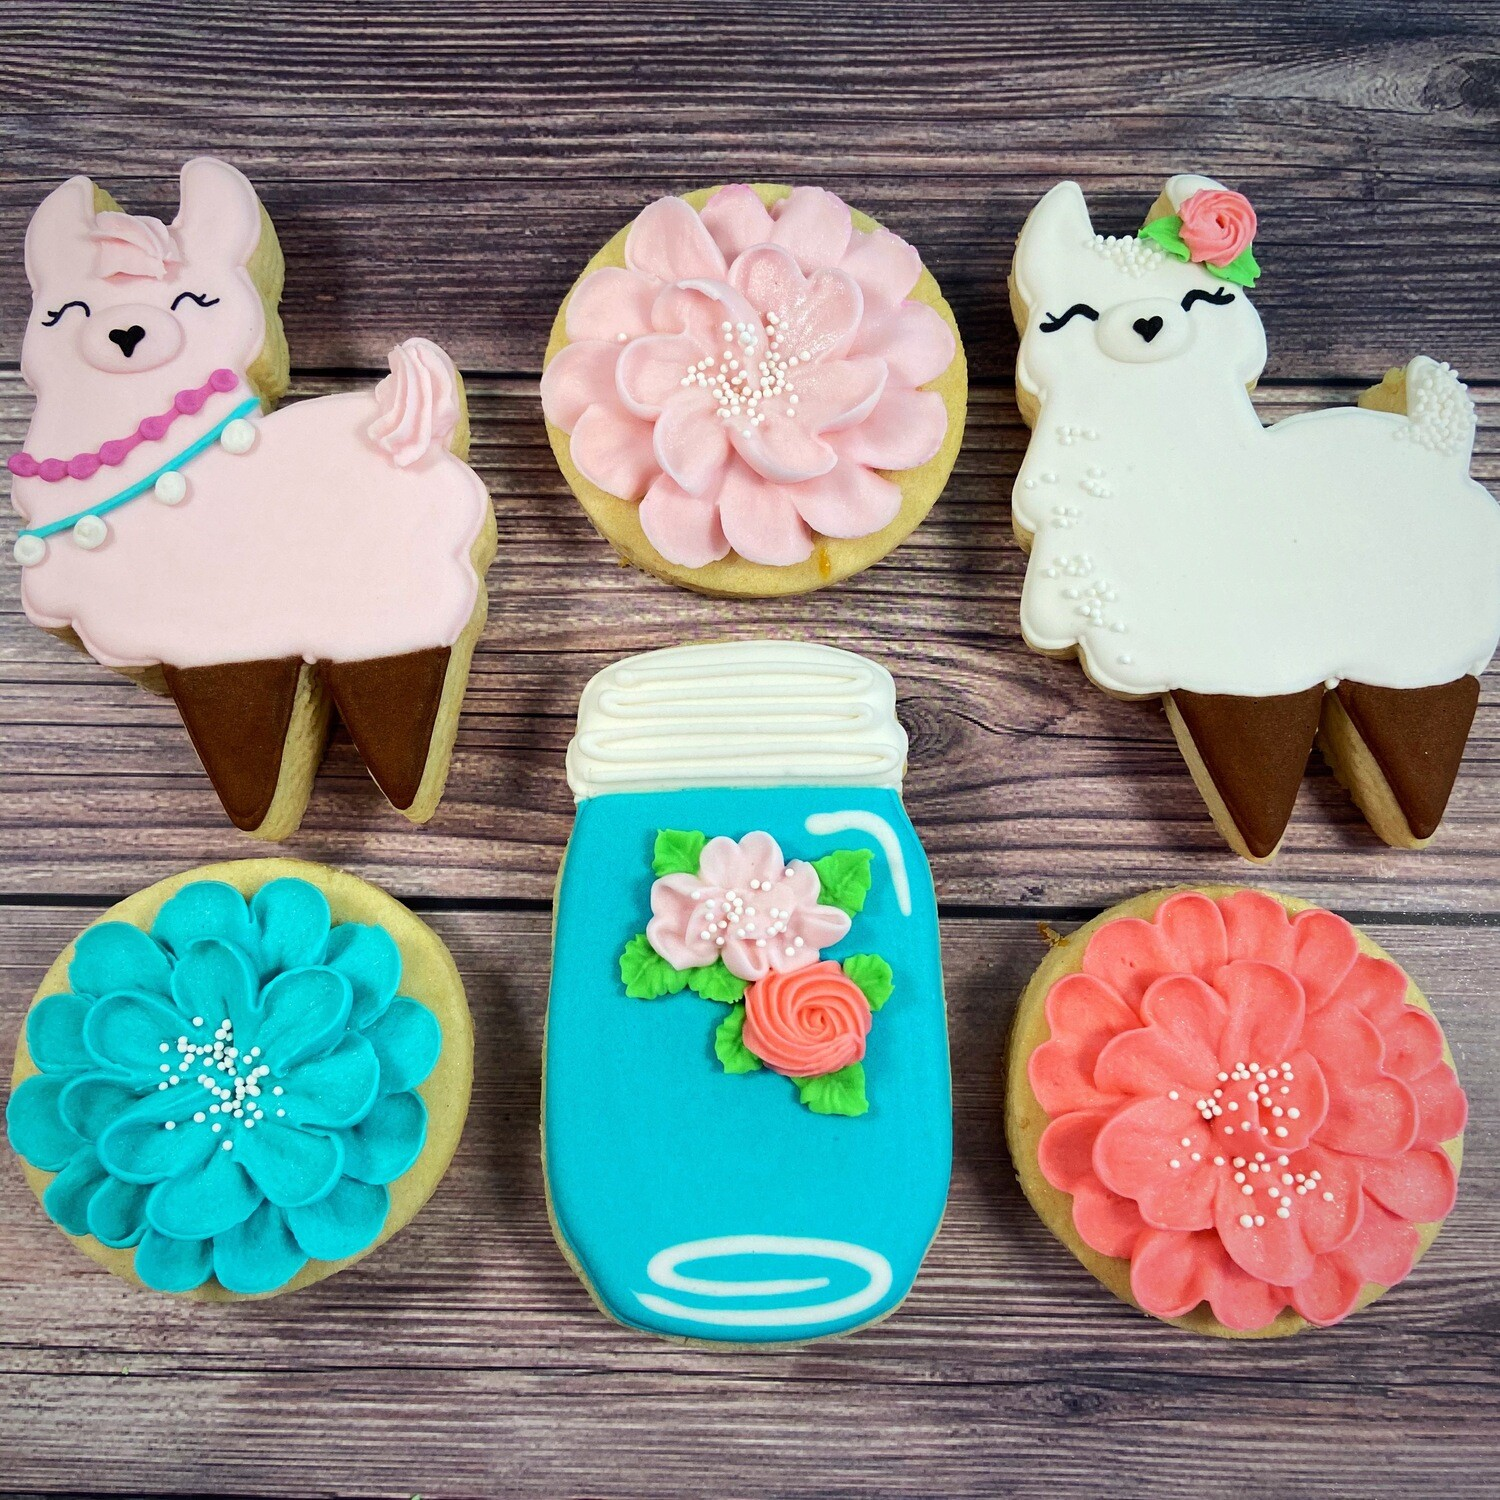 'FLORAL LLAMA Decorating Workshop - SUNDAY, AUGUST 1st at 4 p.m. (THE COOKIE DECORATING STUDIO)